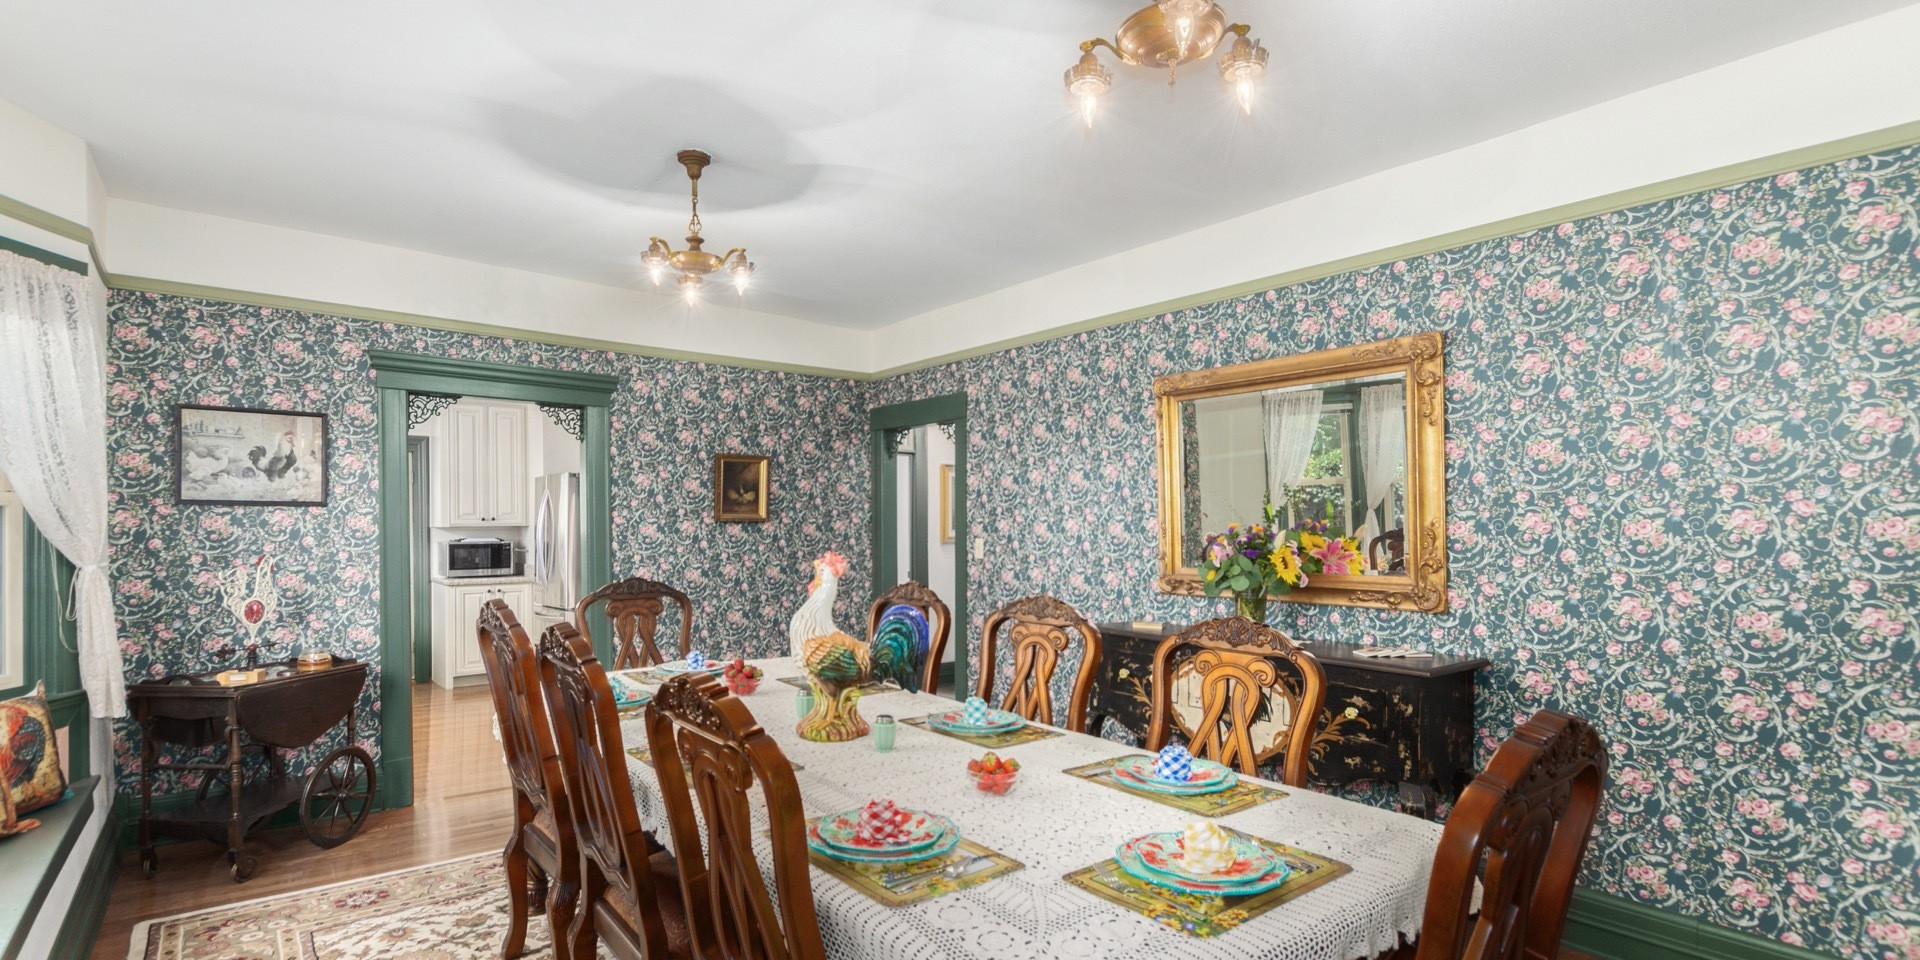 The Rooster Dining Room